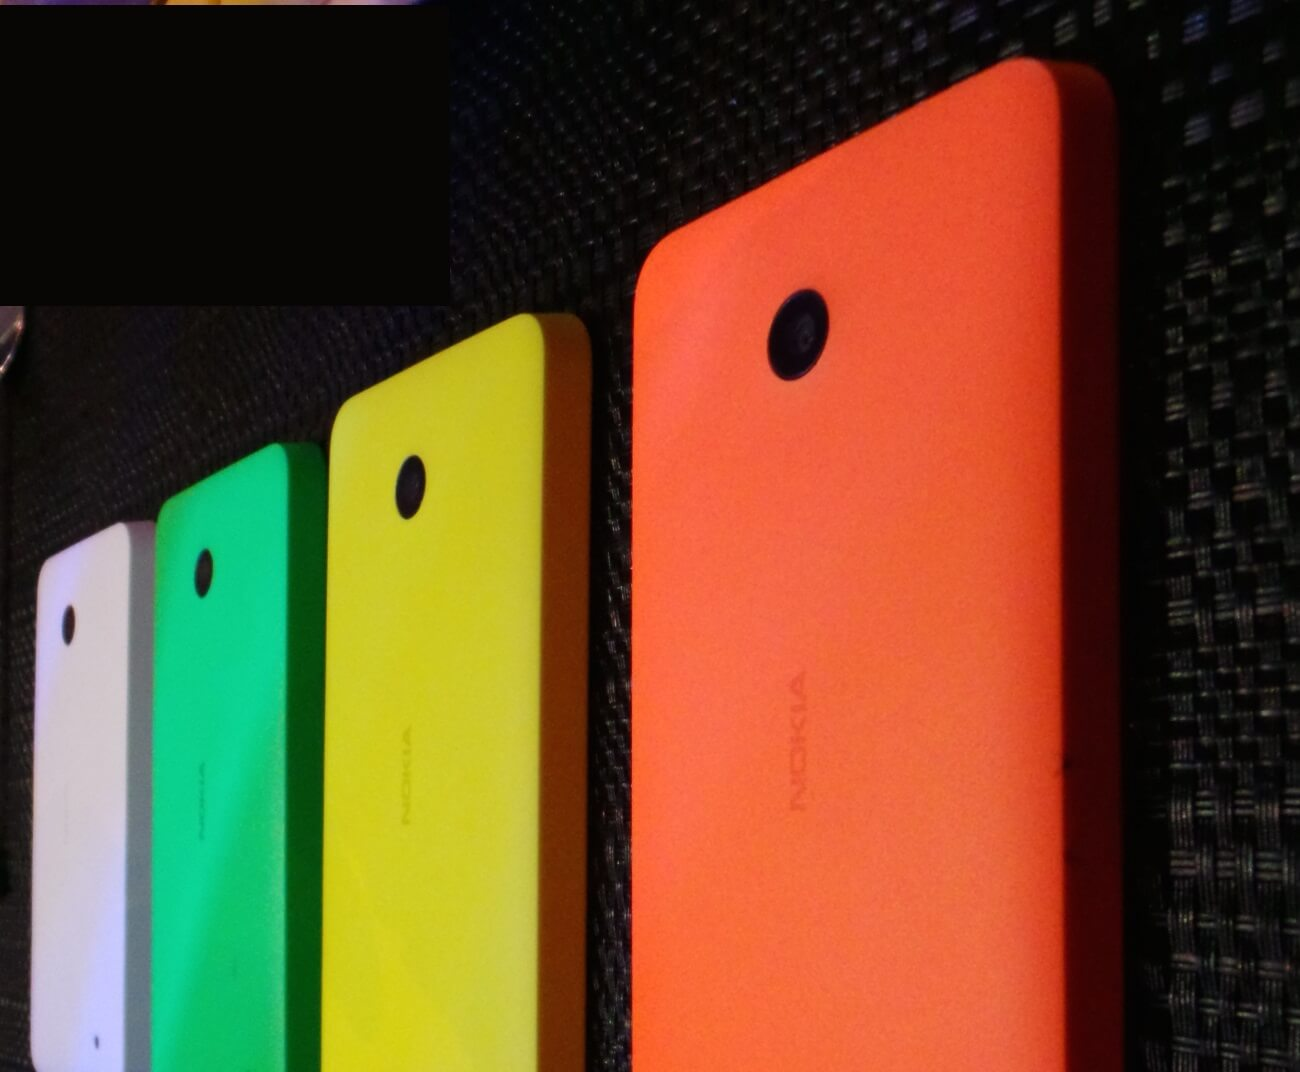 Nokia Lumia 4 colors